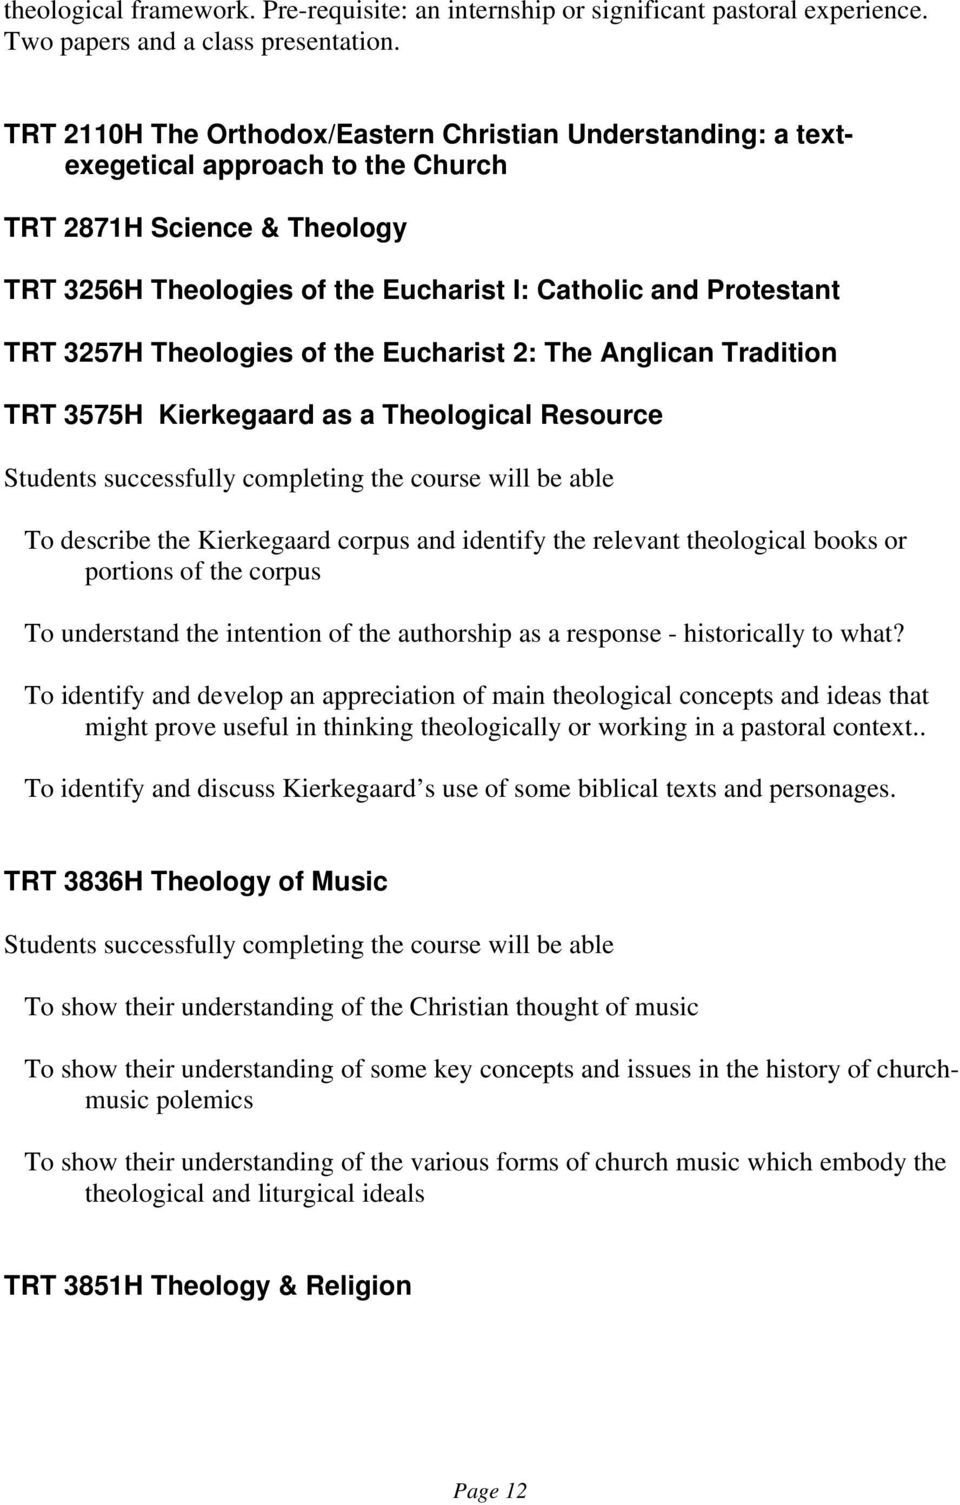 Theologies of the Eucharist 2: The Anglican Tradition TRT 3575H Kierkegaard as a Theological Resource To describe the Kierkegaard corpus and identify the relevant theological books or portions of the